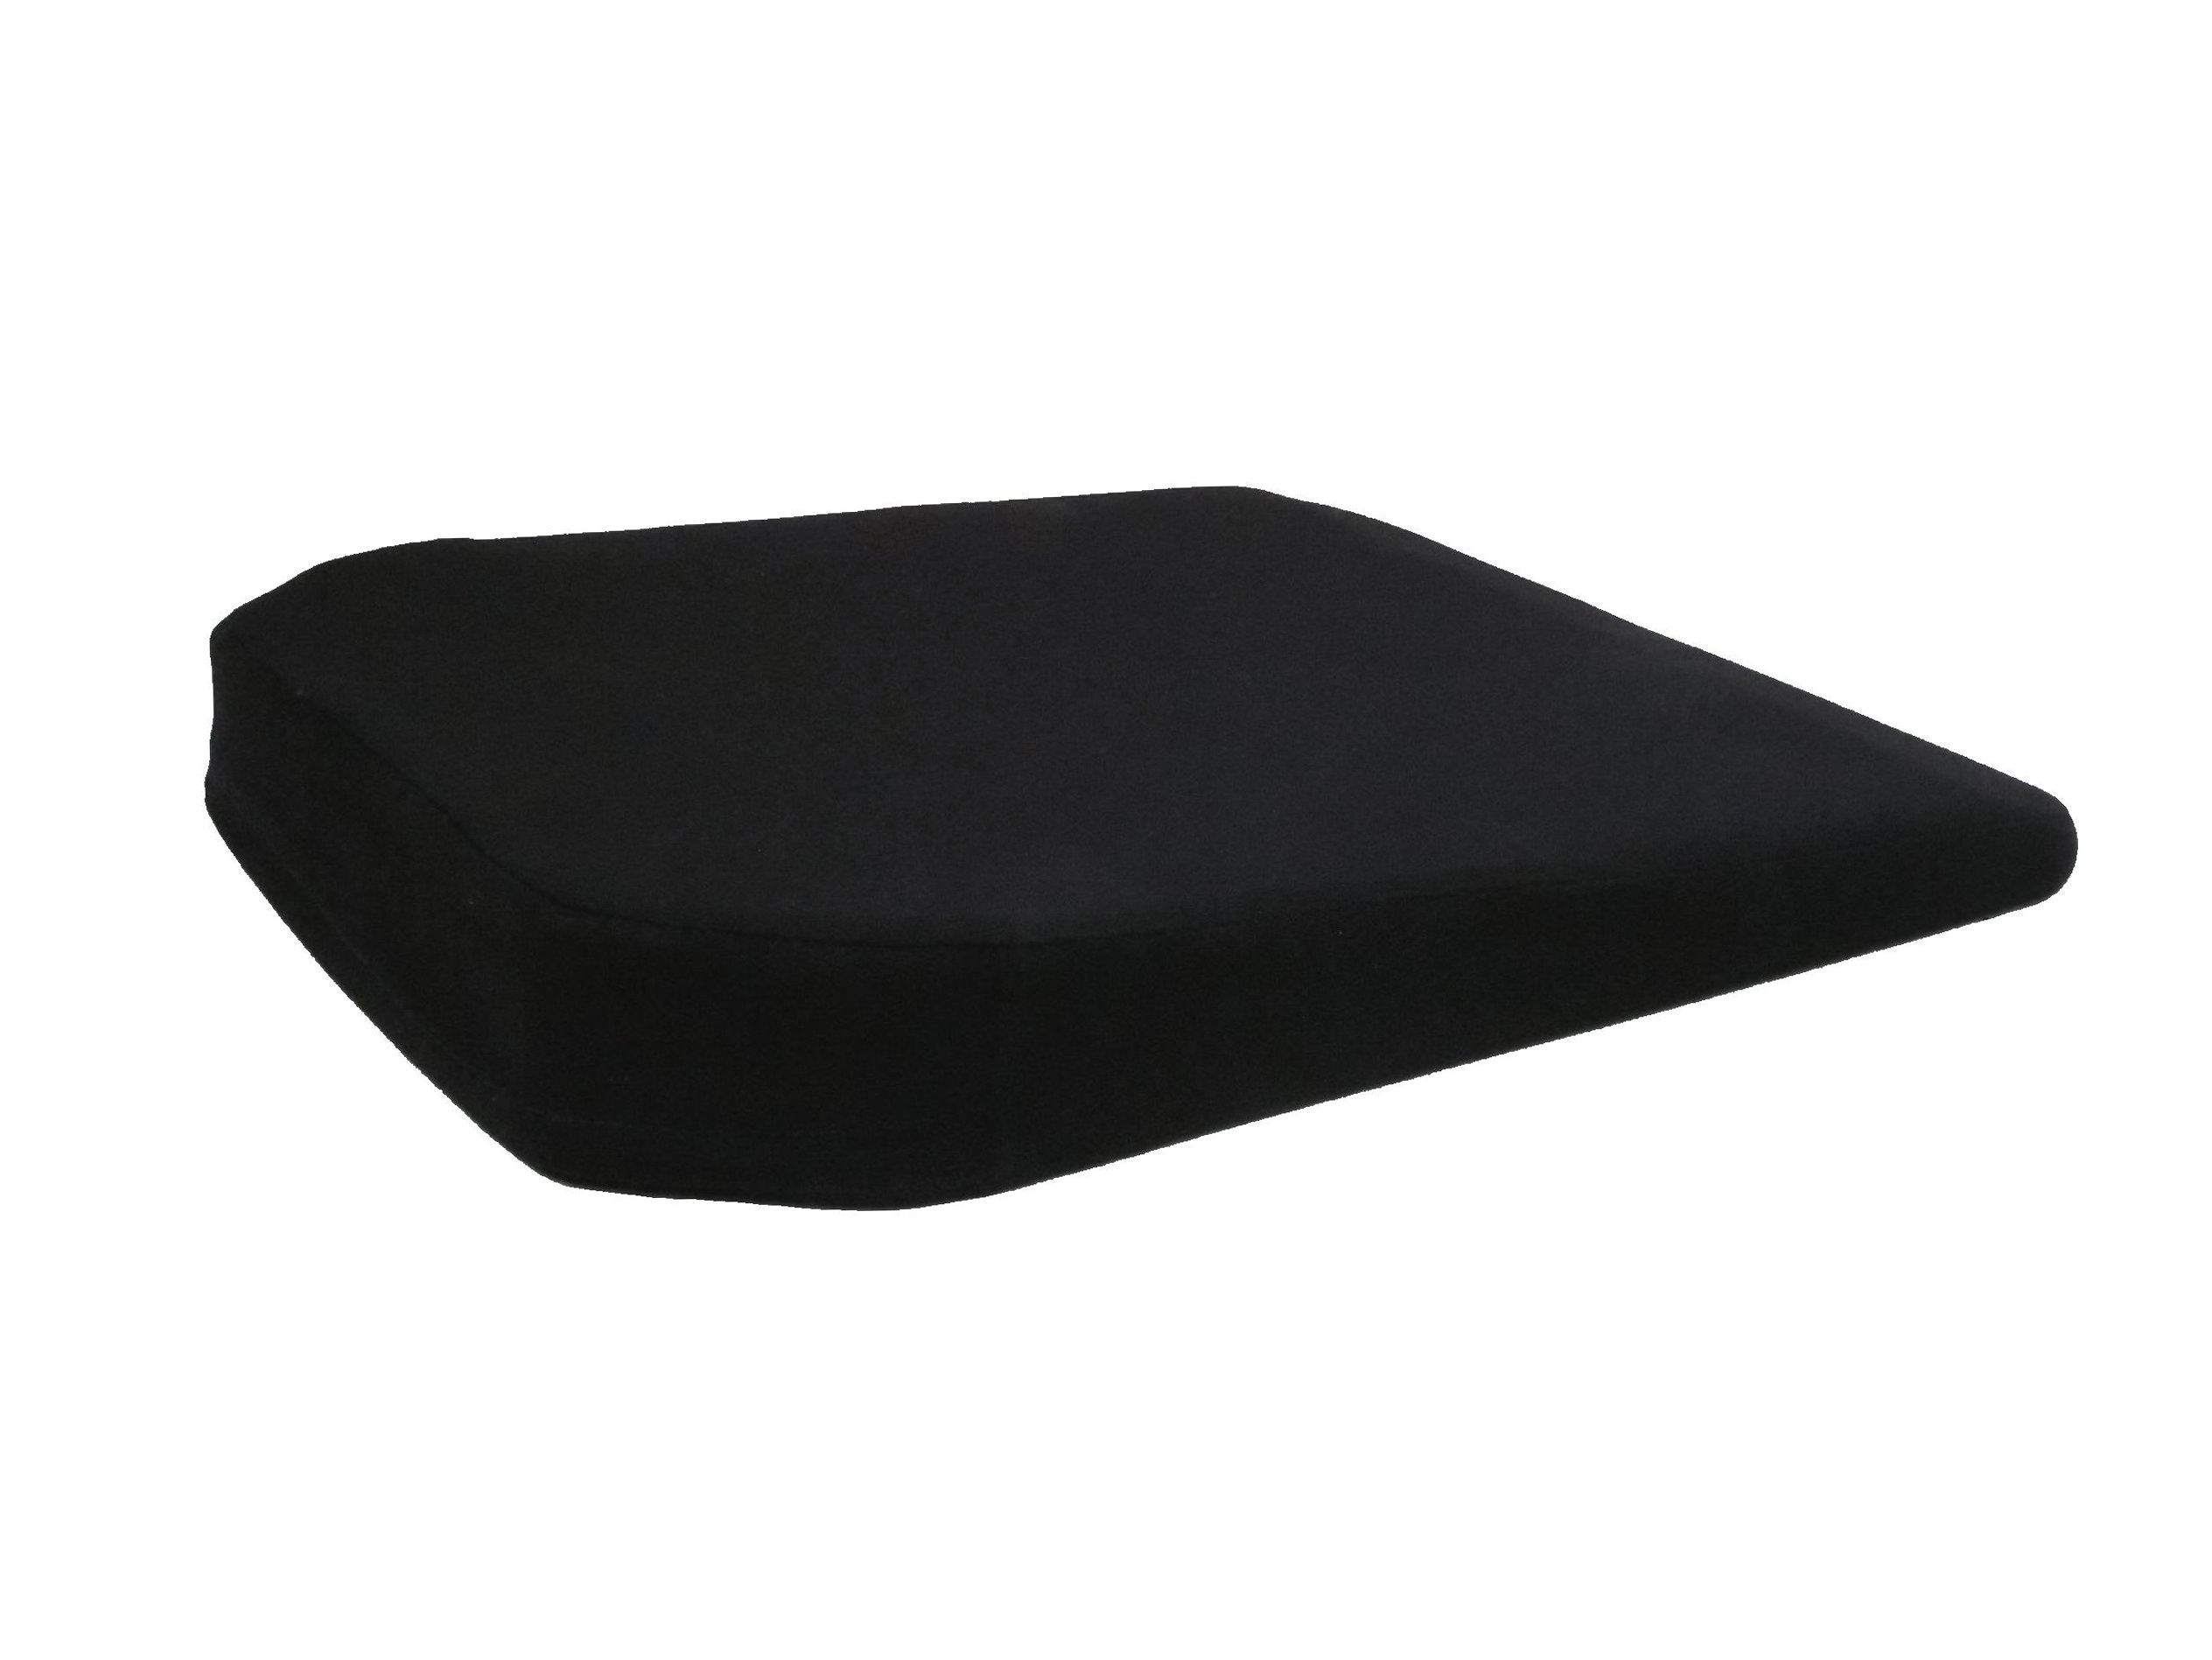 Wedge Seat Cushion For Sciatica